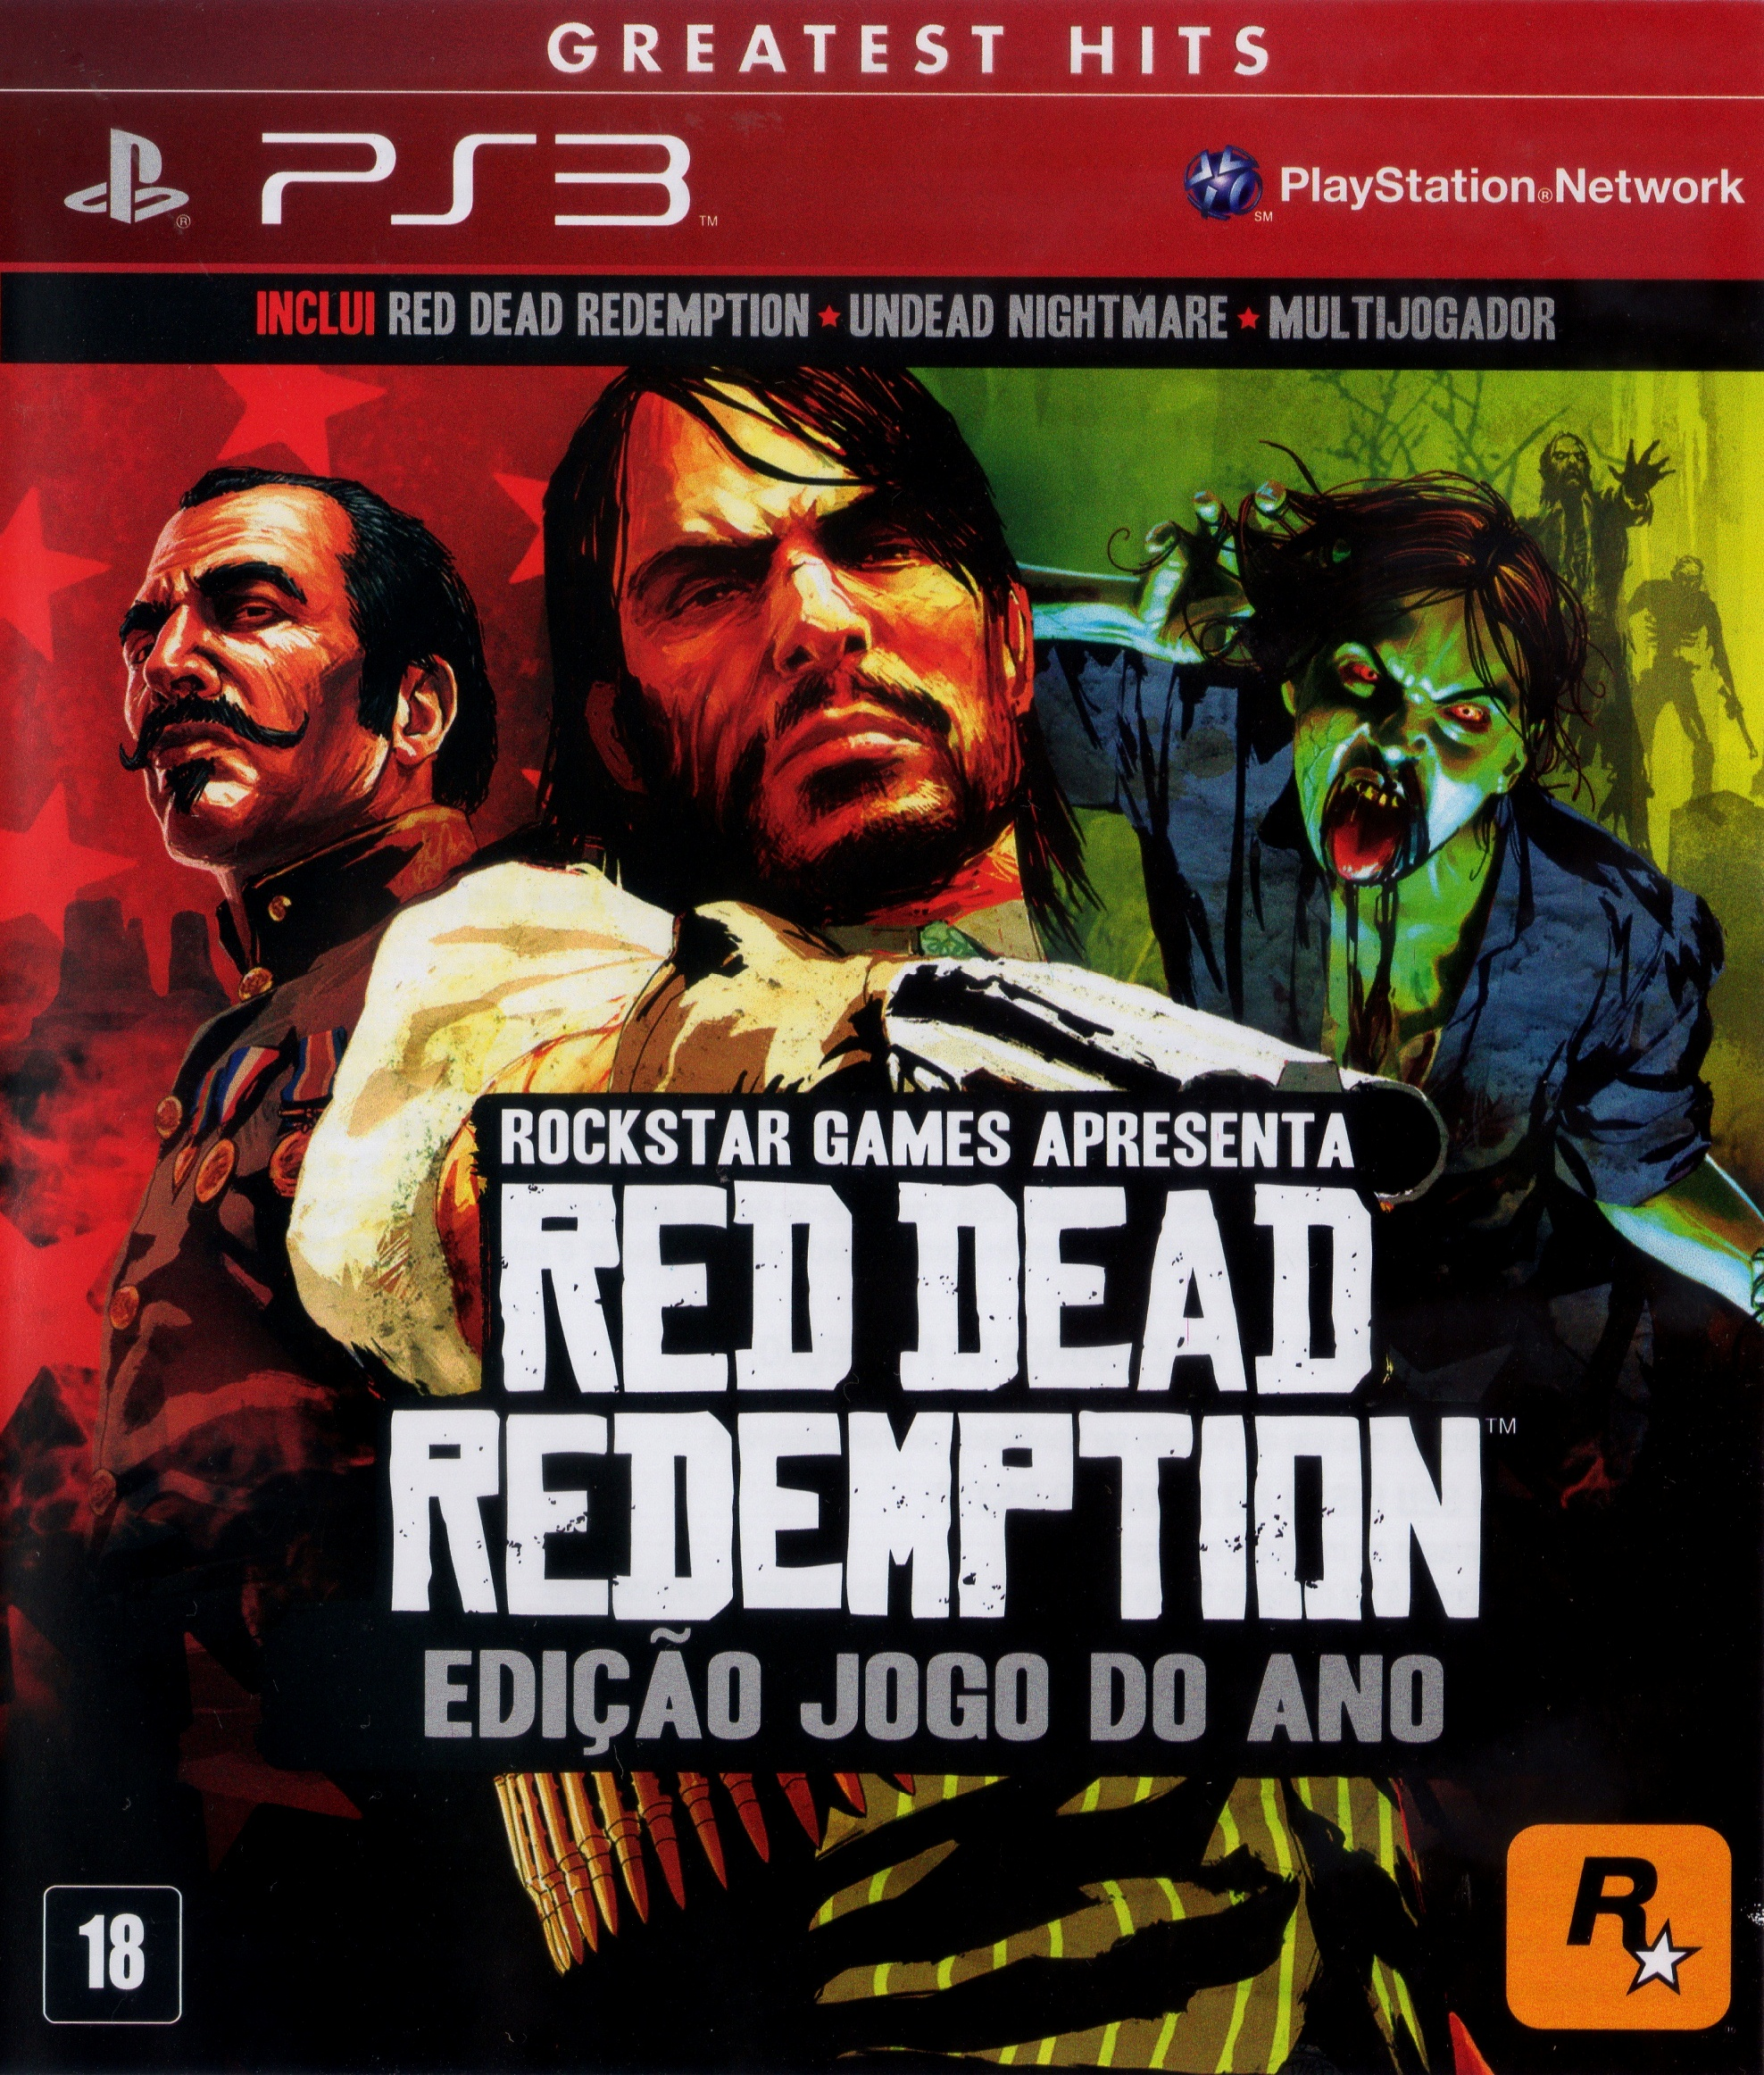 Red Dead Redemption (video game, PS3) reviews & ratings